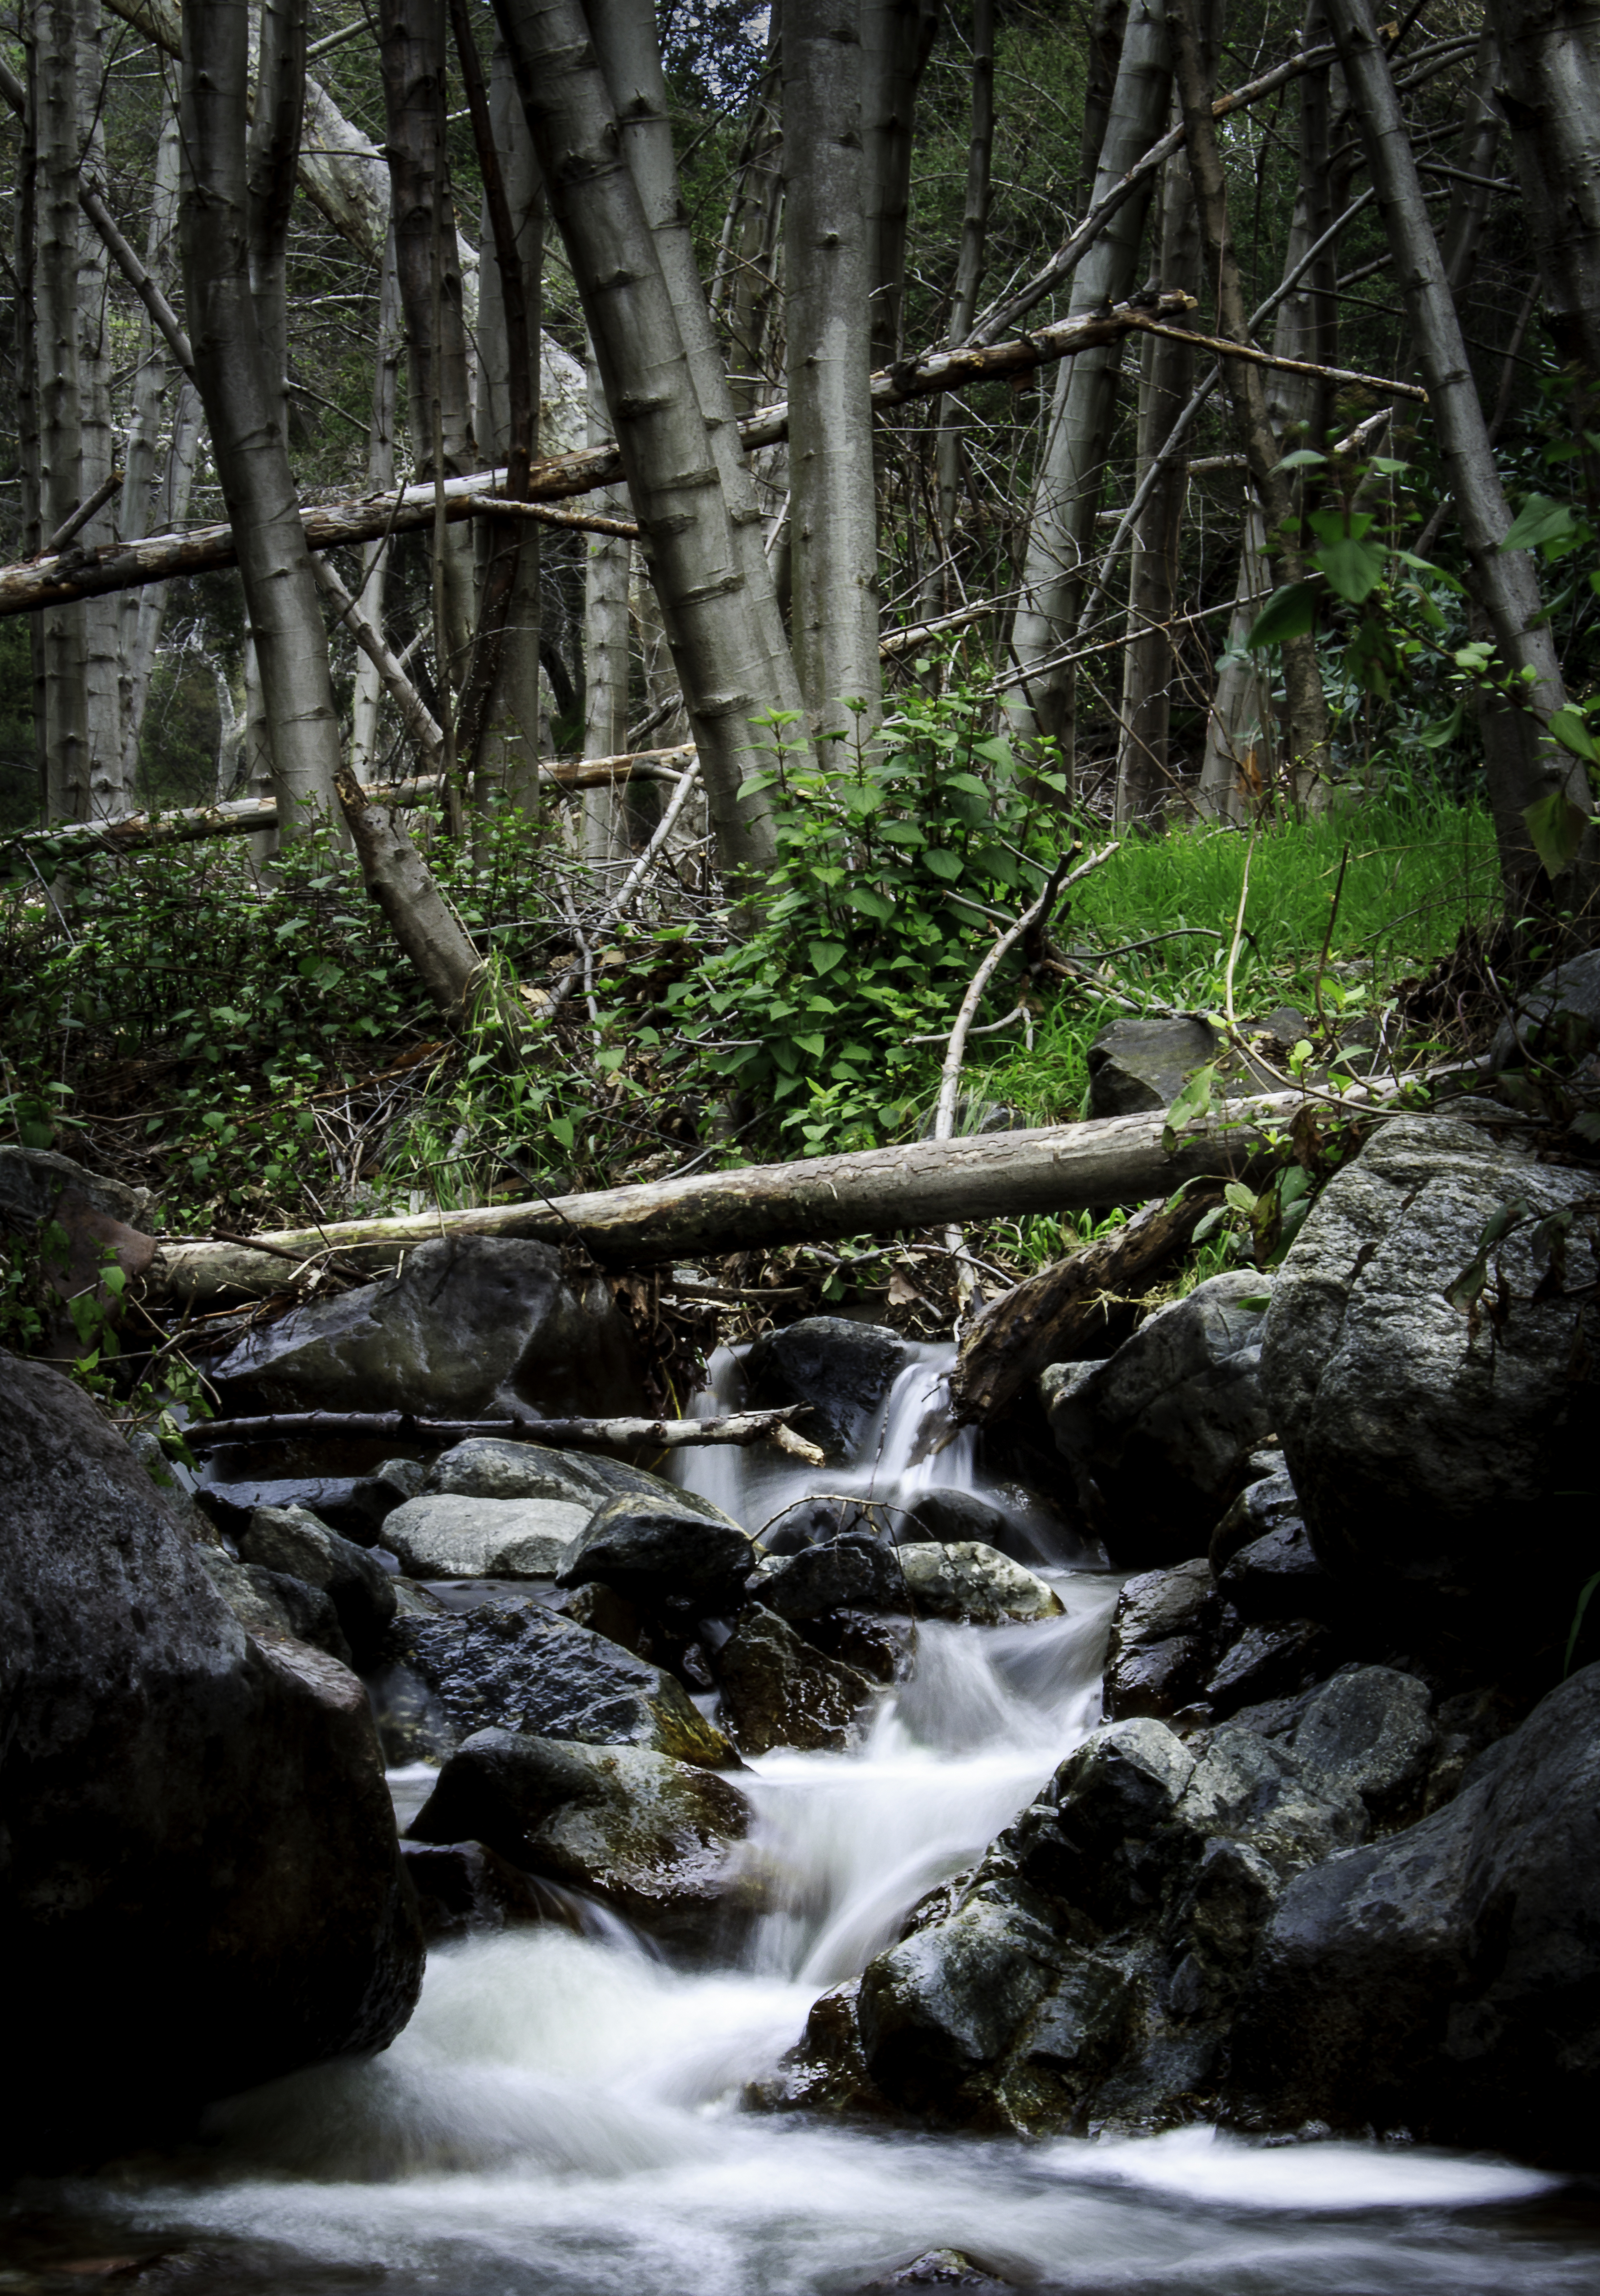 River cascading down boulders in a forest.